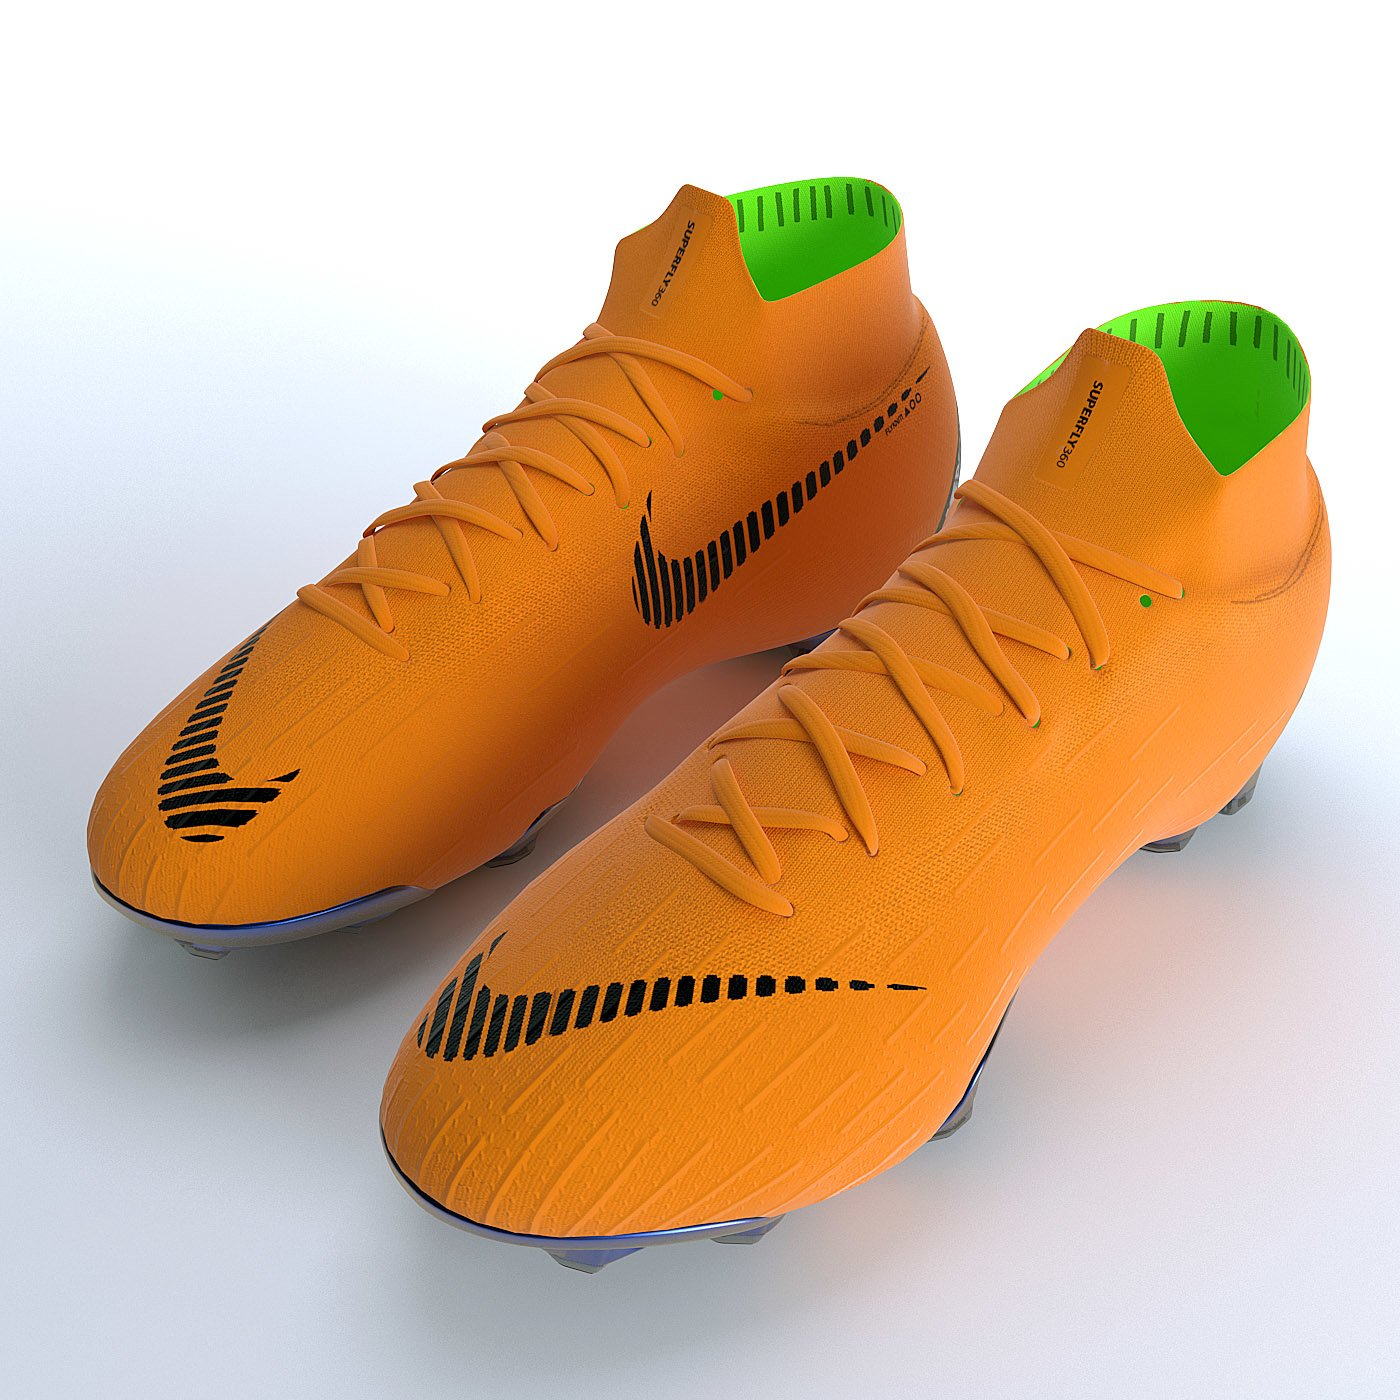 4a6085a1bc7 Nike Mercurial Superfly 360 Elite 3D Model in Clothing 3DExport